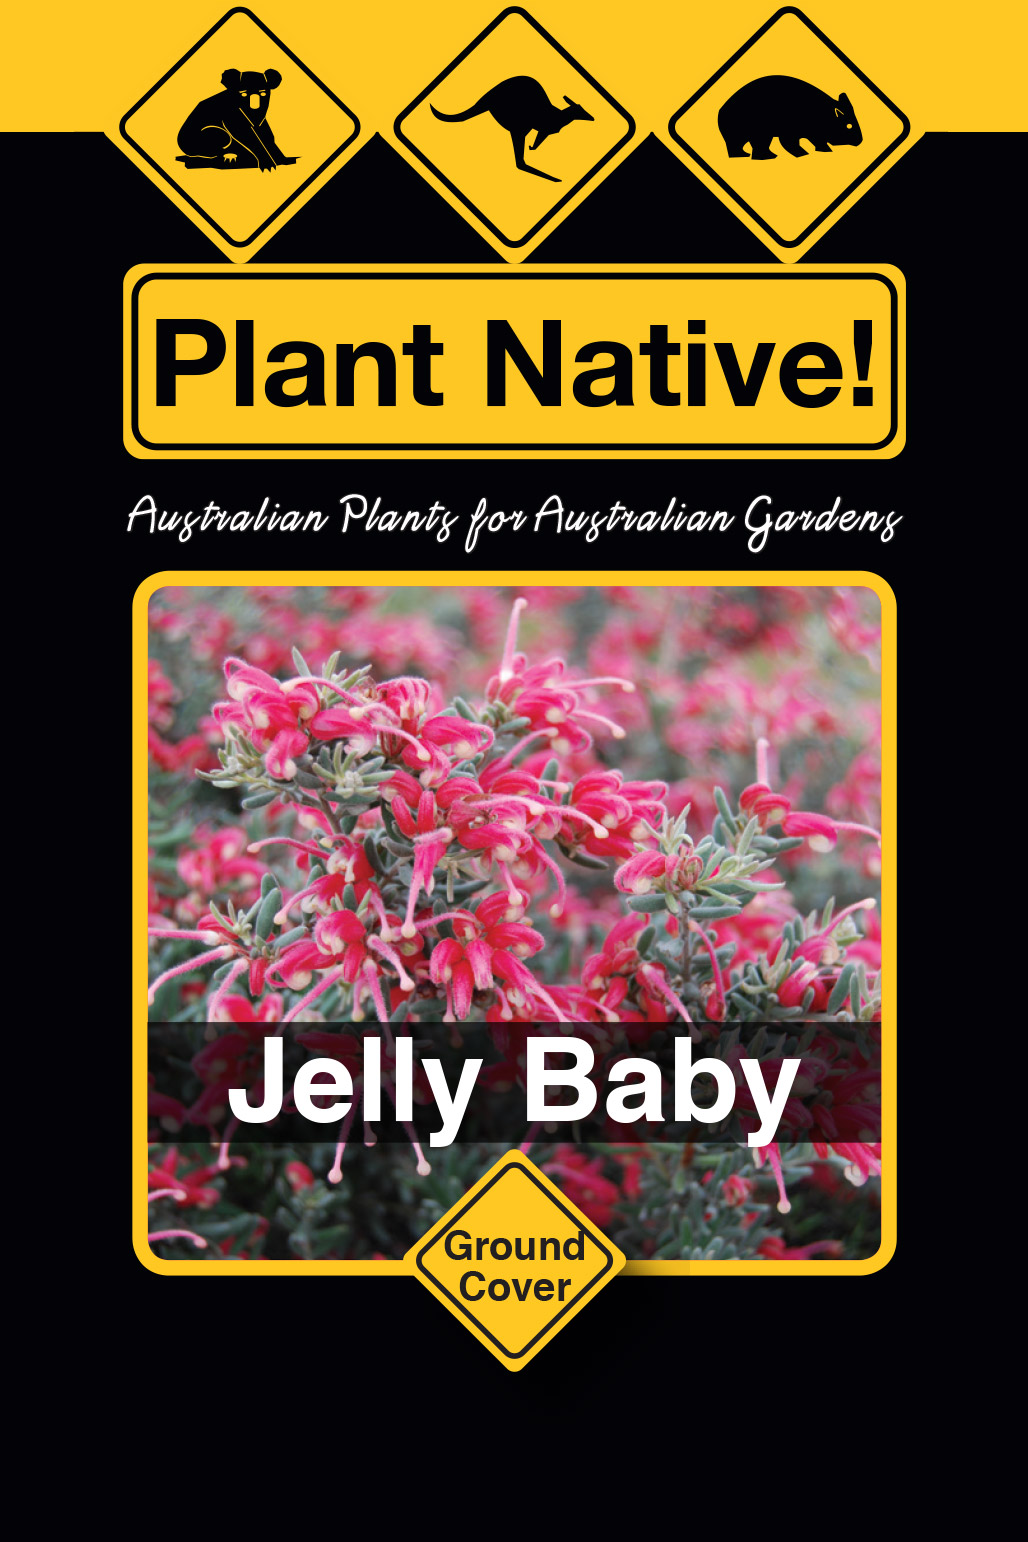 Jelly Baby - Plant Native!